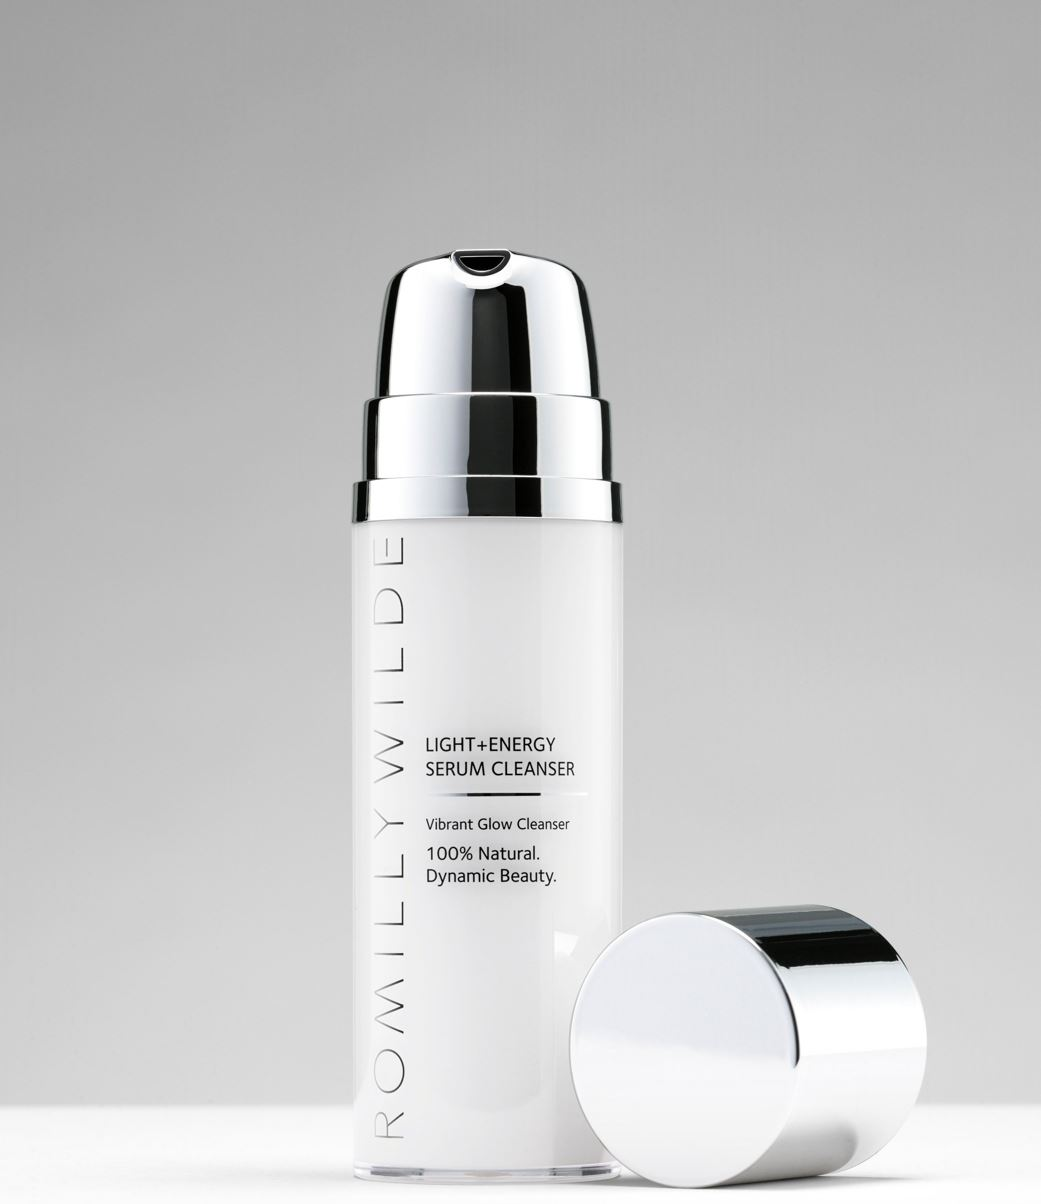 ROMILLY WILDE: Light + Energy Serum Cleanser